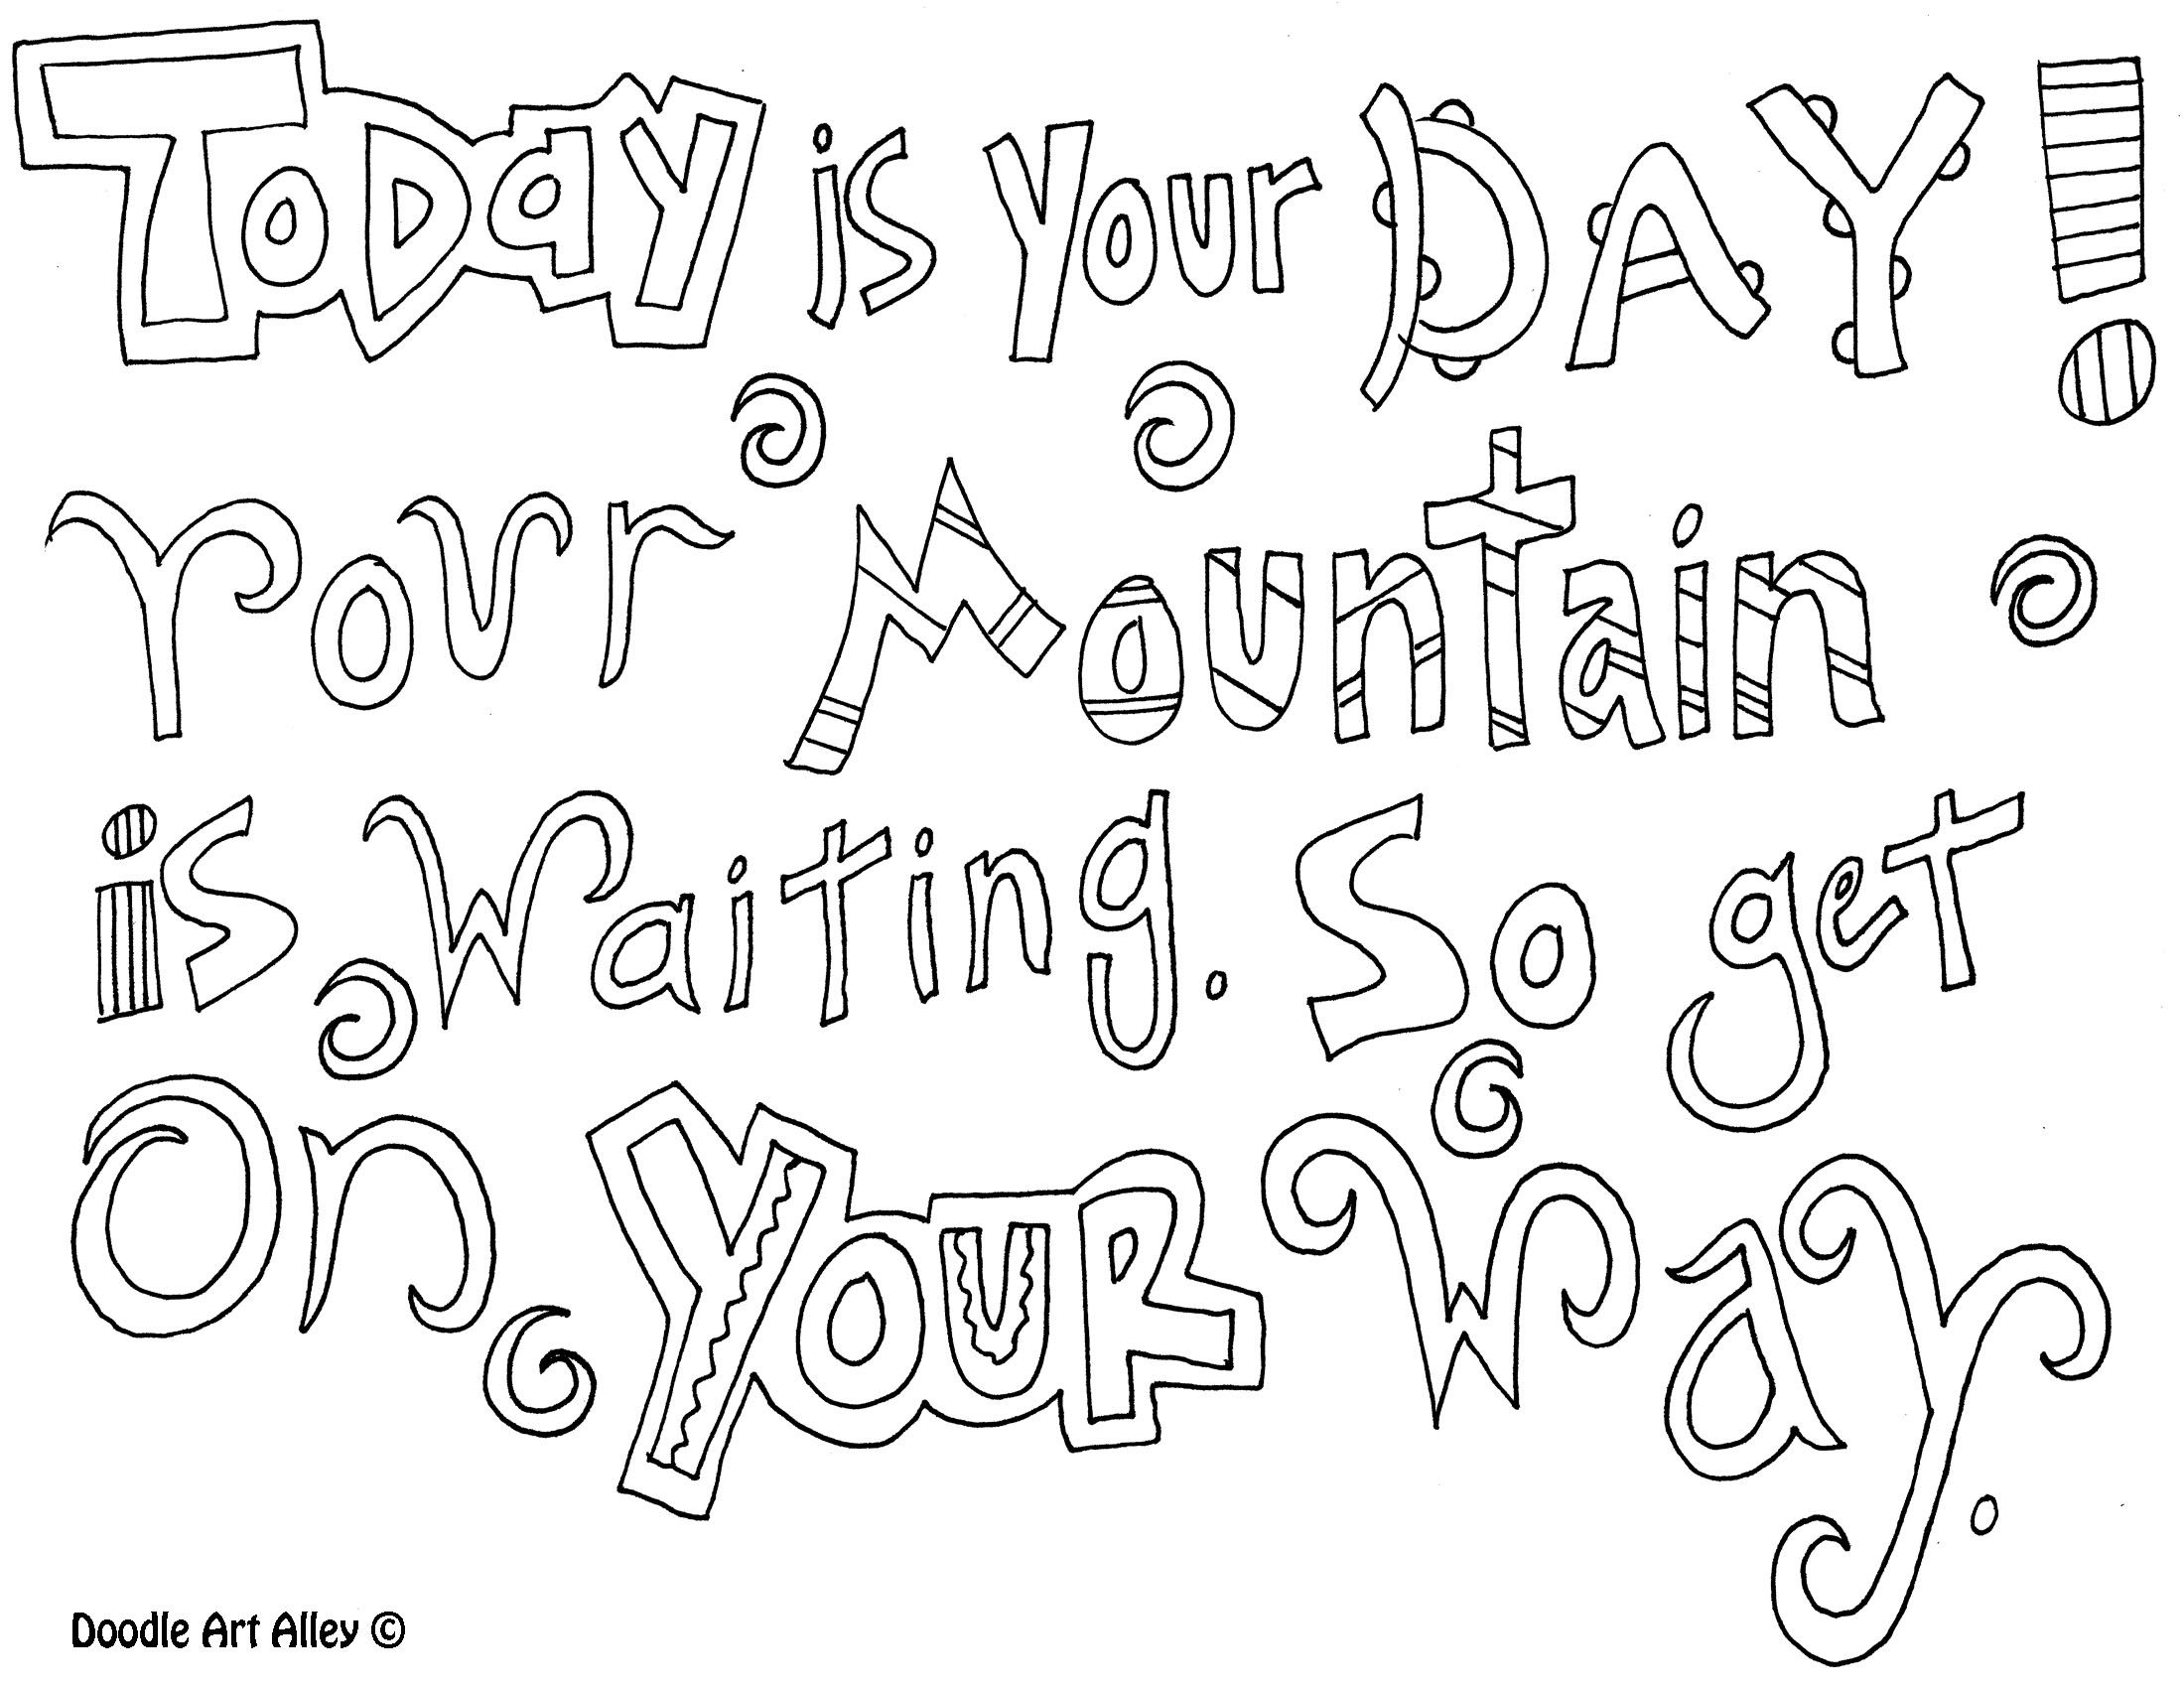 Dr Seuss Quotes Coloring Pages Inspirational Thoughts